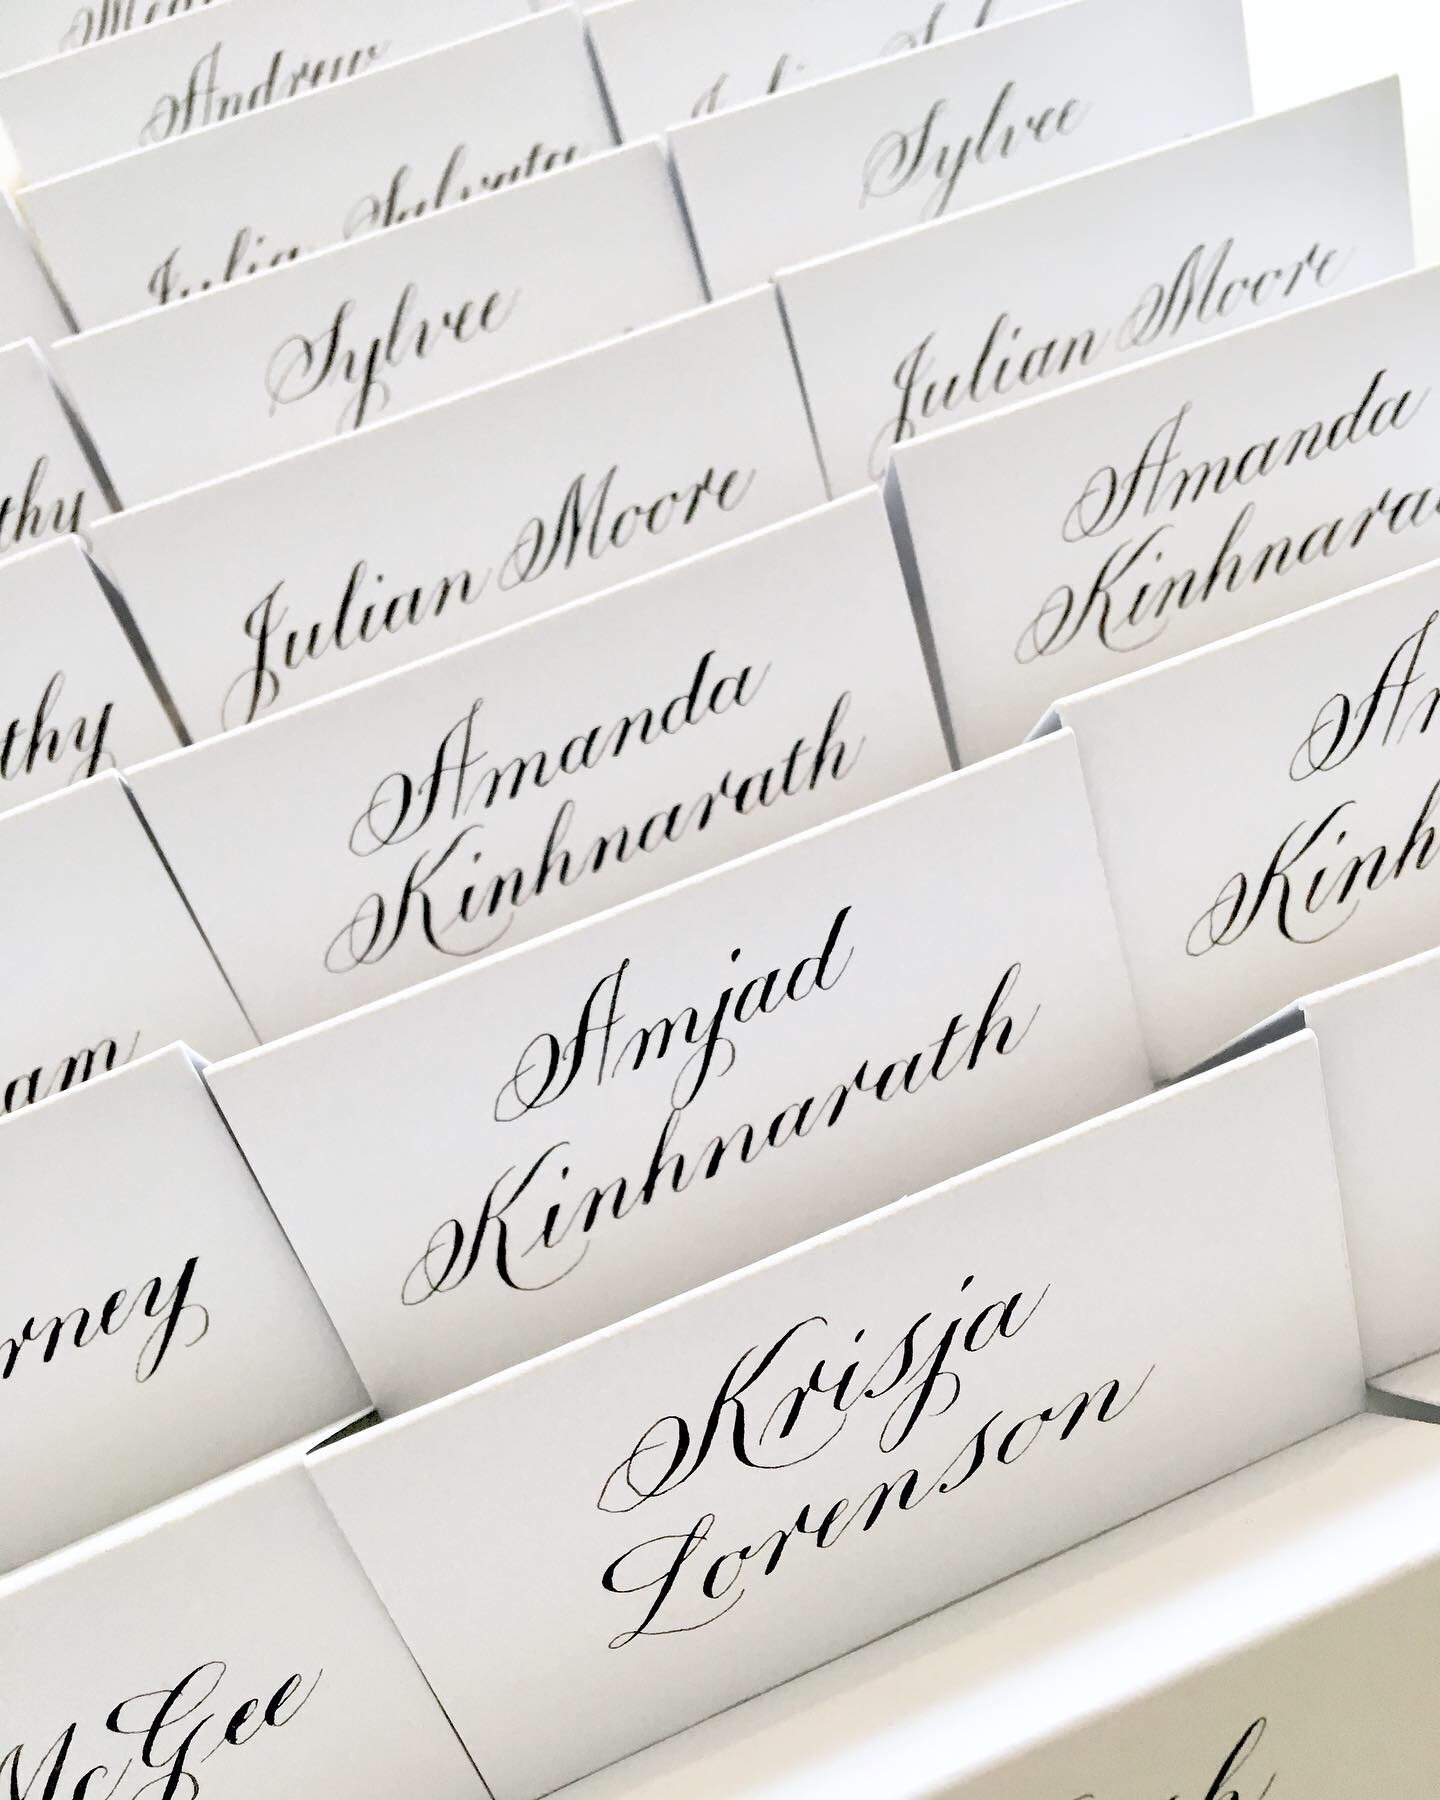 Black ink Copperplate calligraphy on white place cards